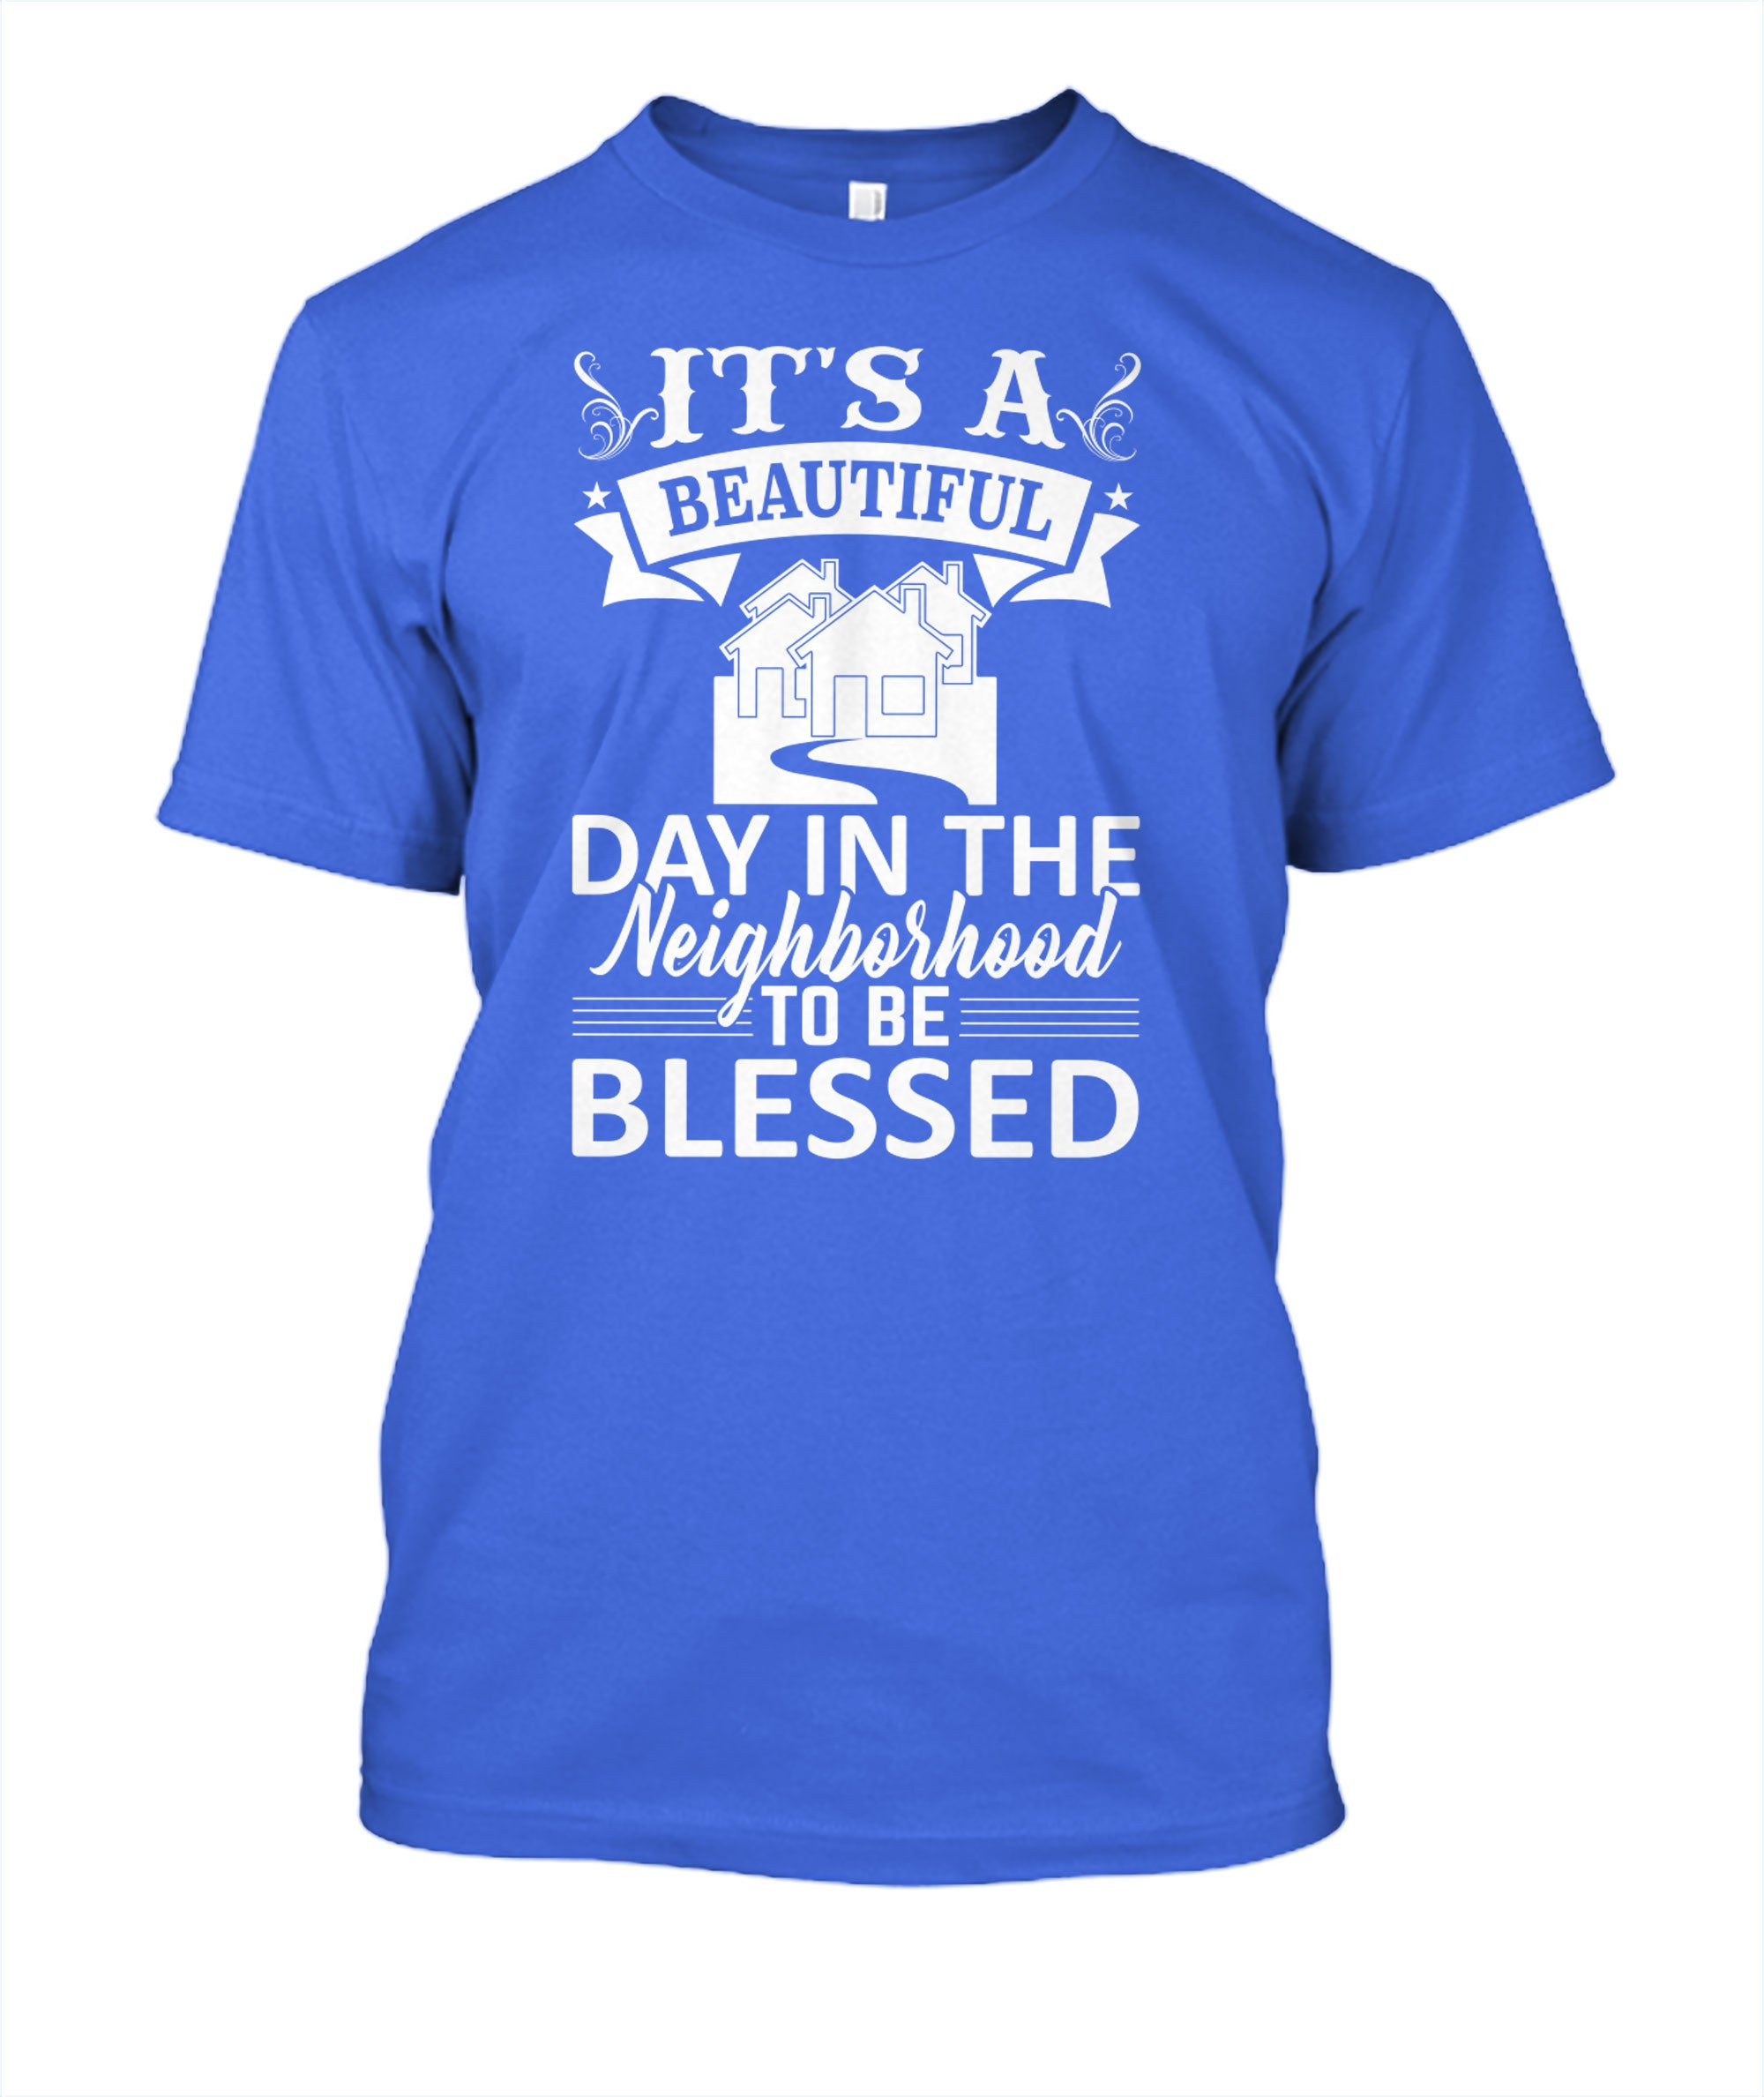 It's A Beautiful Day In The Neighborhood T-Shirt